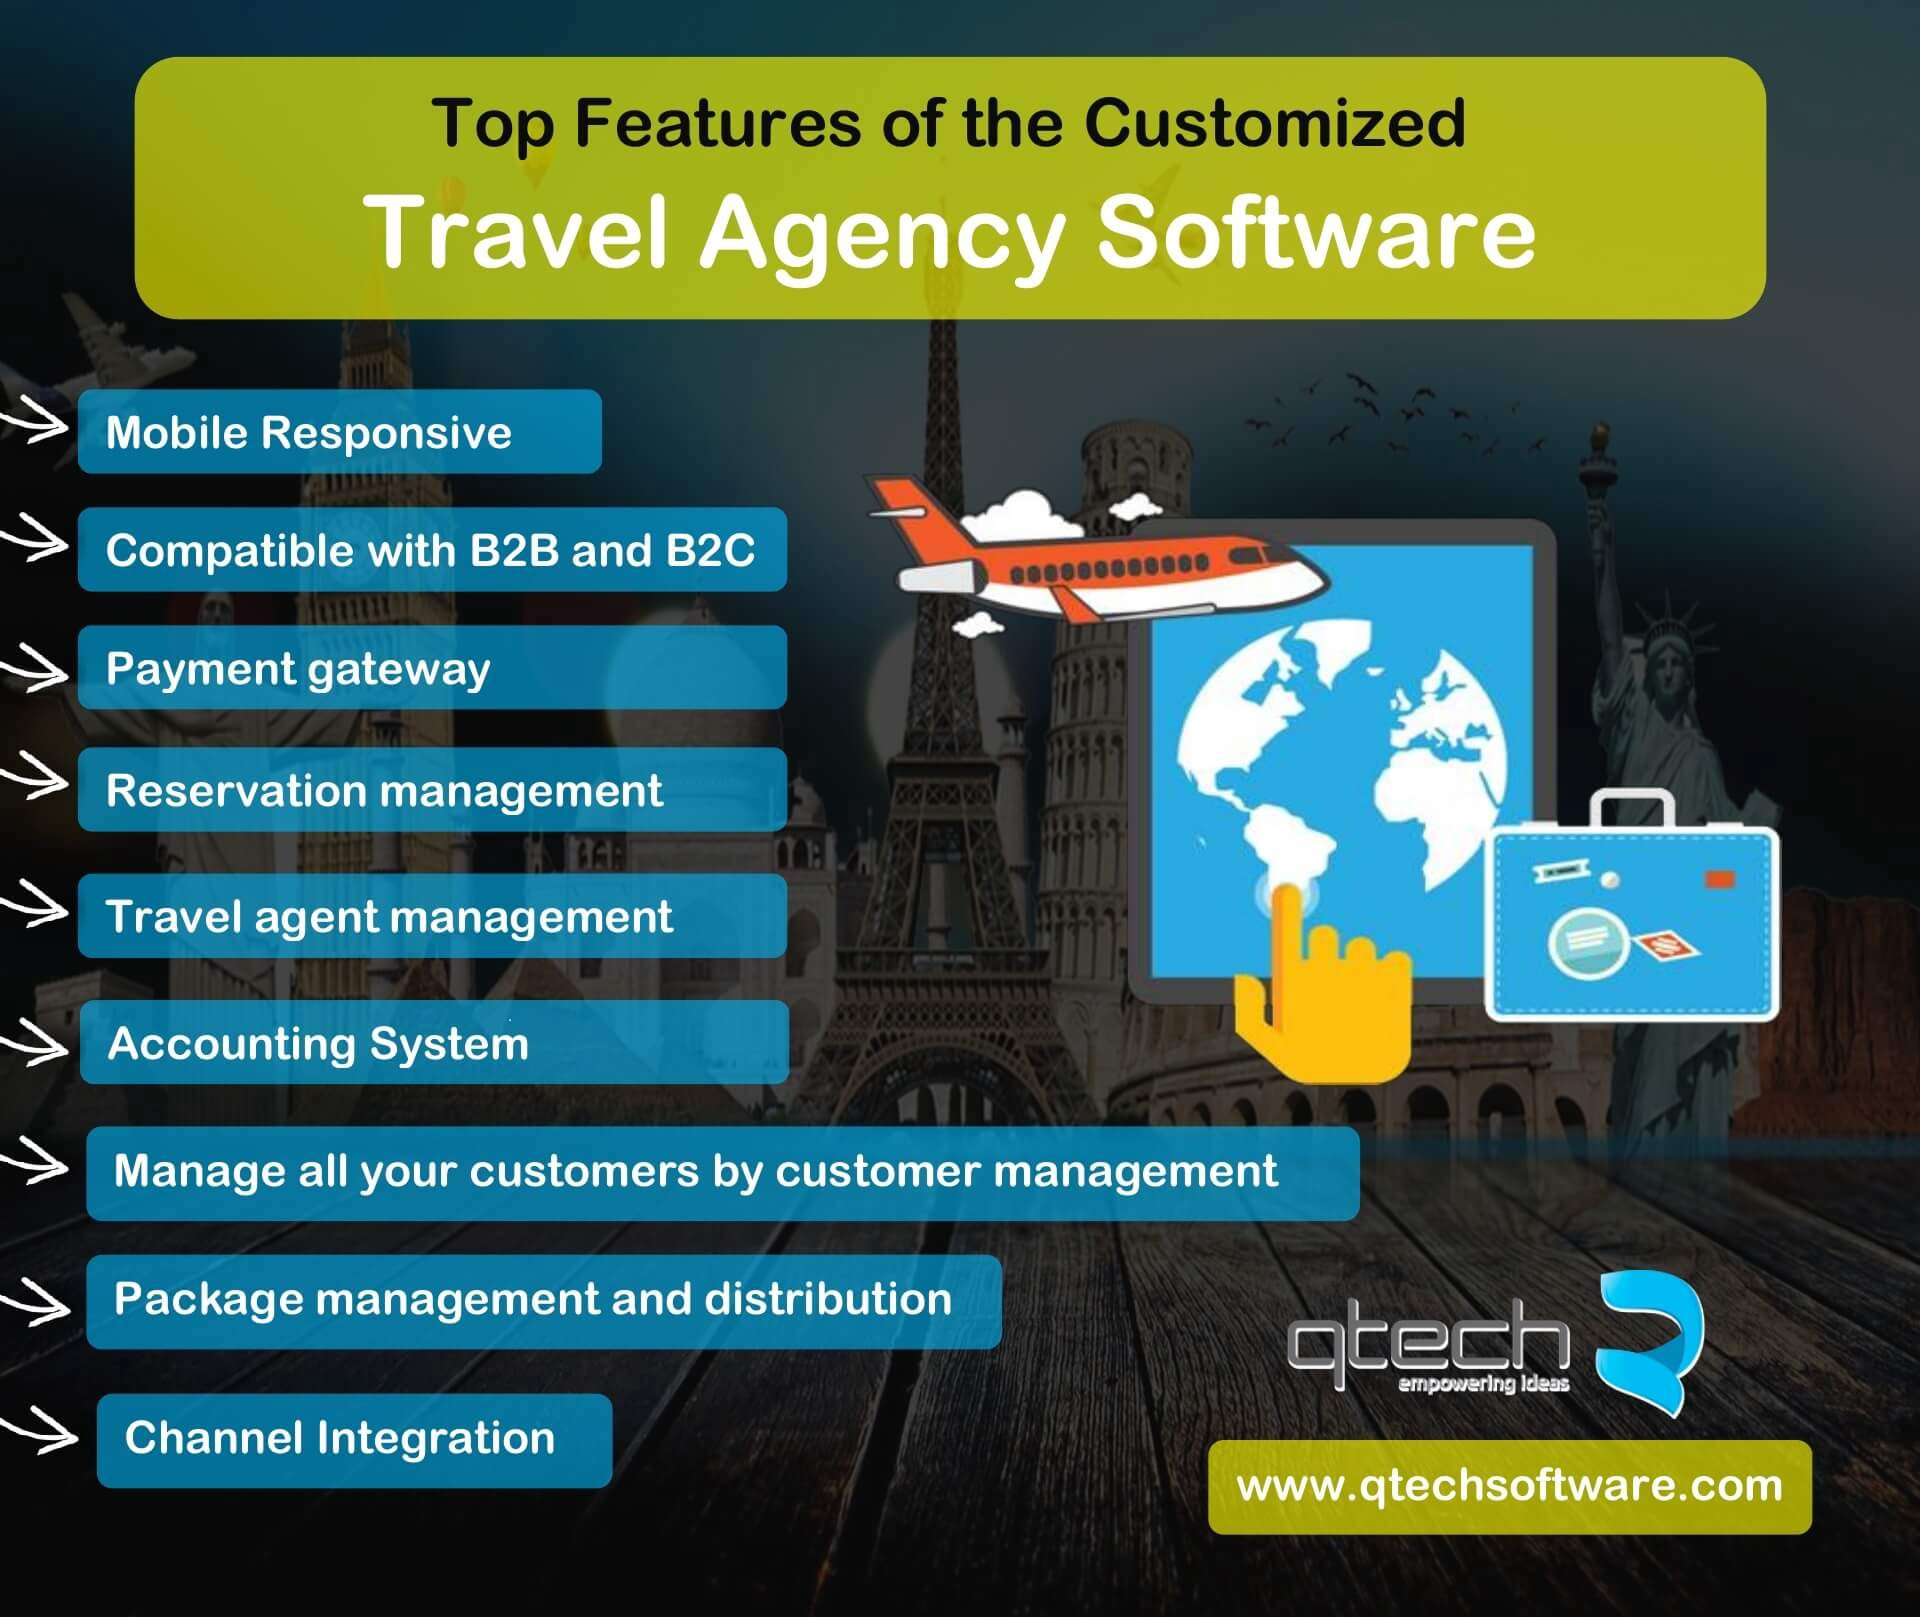 Top Features of the Customized Travel Agency Software